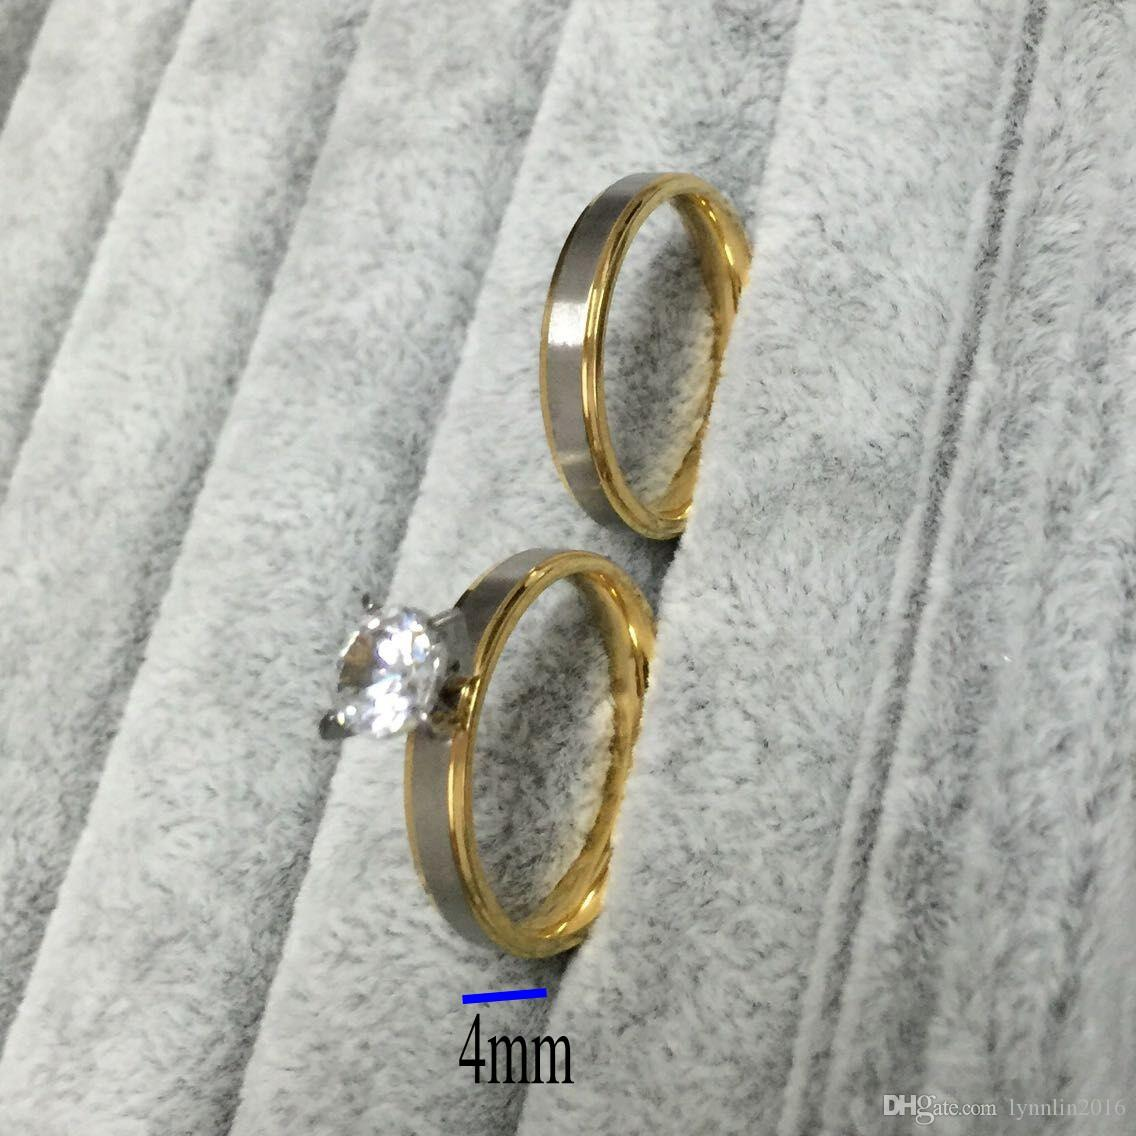 4mm titanium Steel CZ diamond Korean Couple Rings Set for Men Women Engagement Lovers, his and hers promise,2 tone gold silver